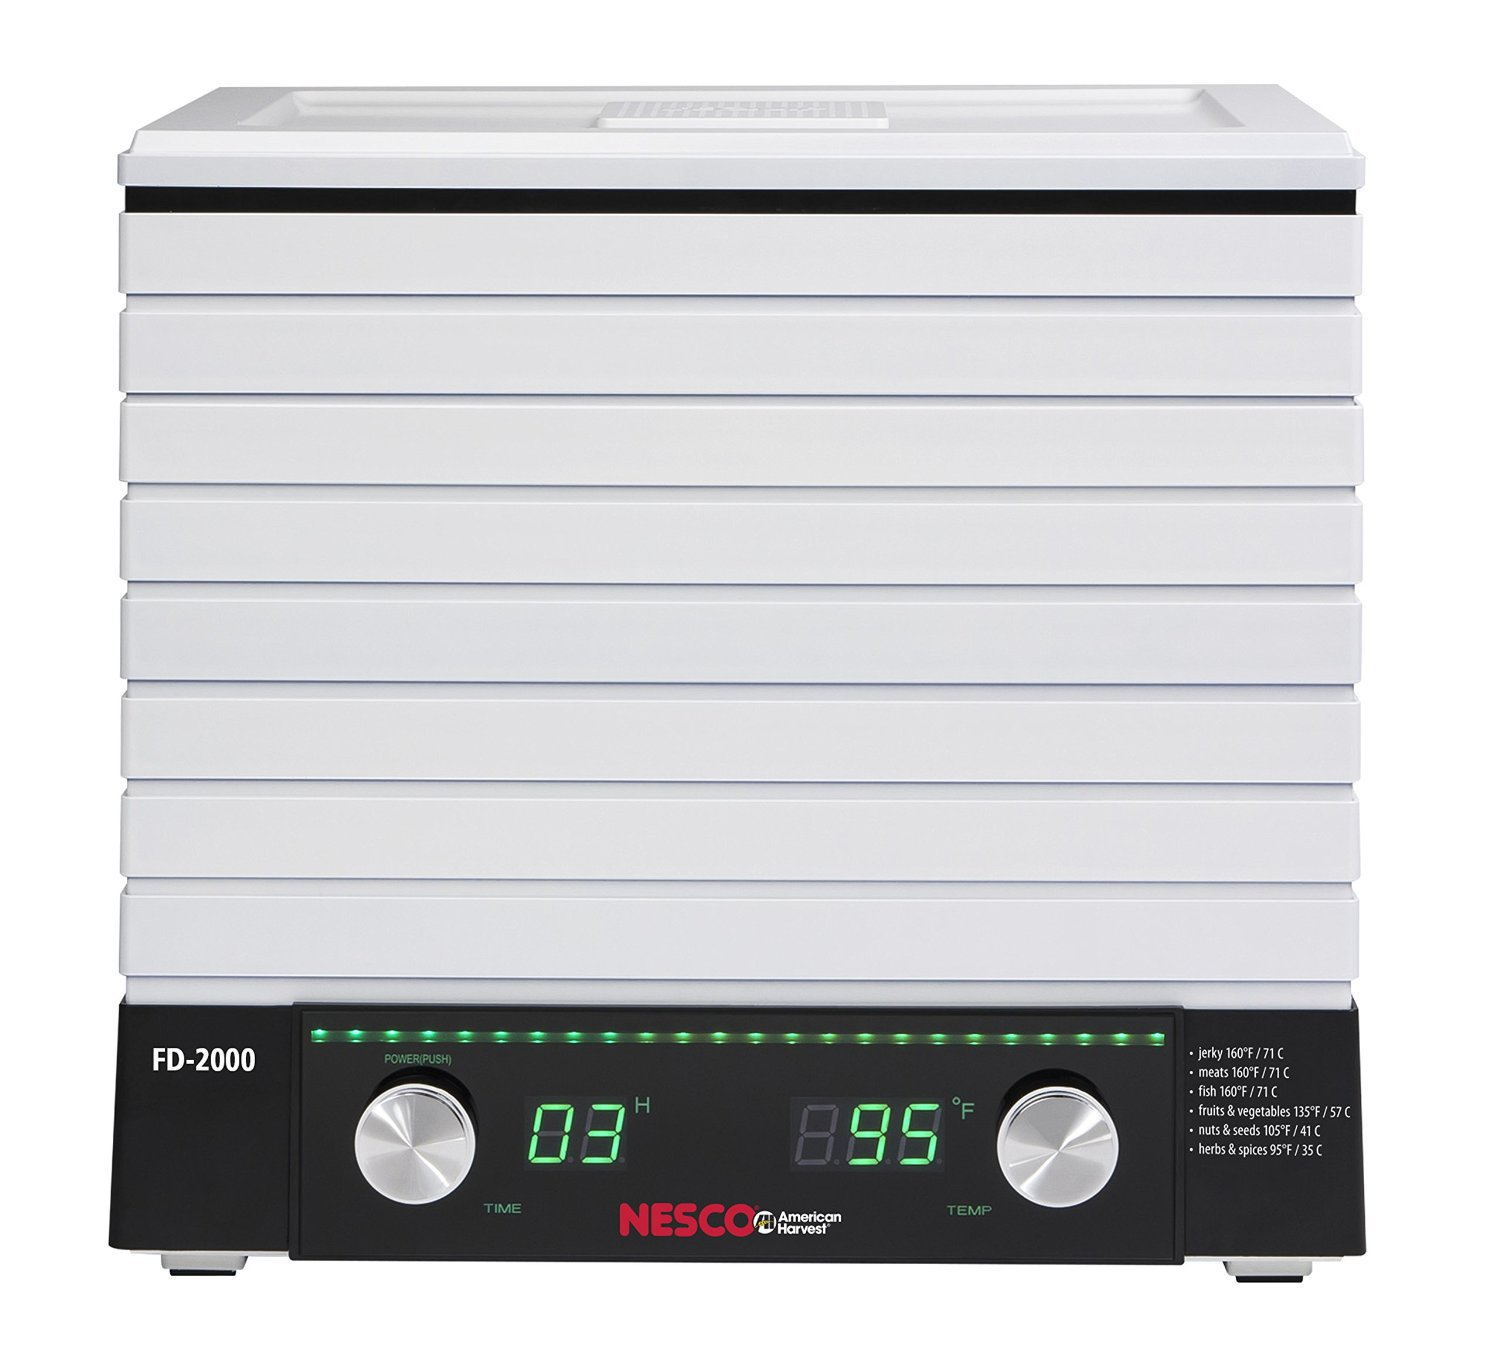 Nesco FD-2000 Digital Square Dehydrator, 530-watt, White